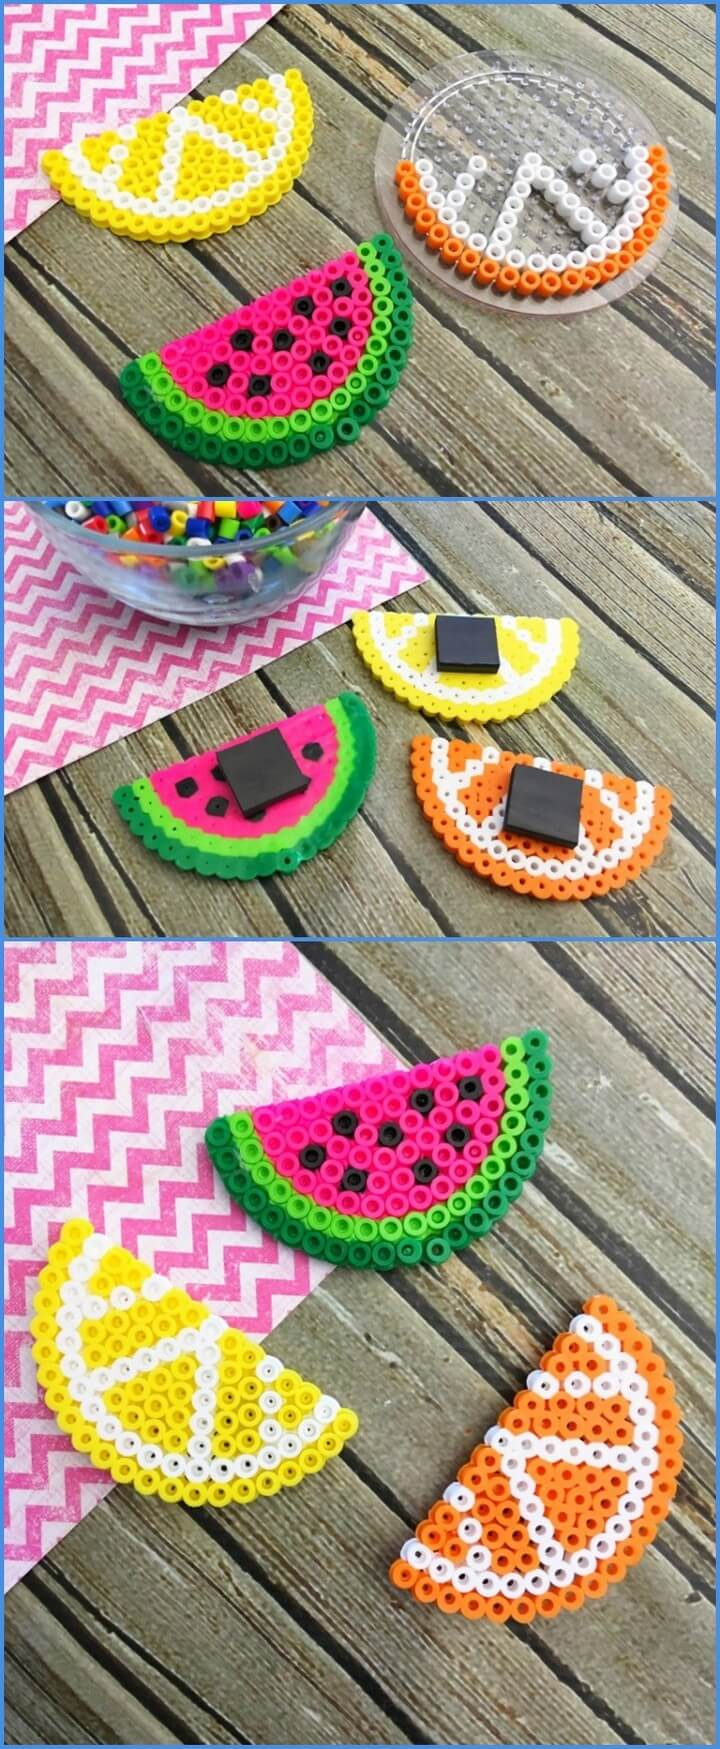 10 DIY Easy Crafts to Make And Sell Ideas For You 7